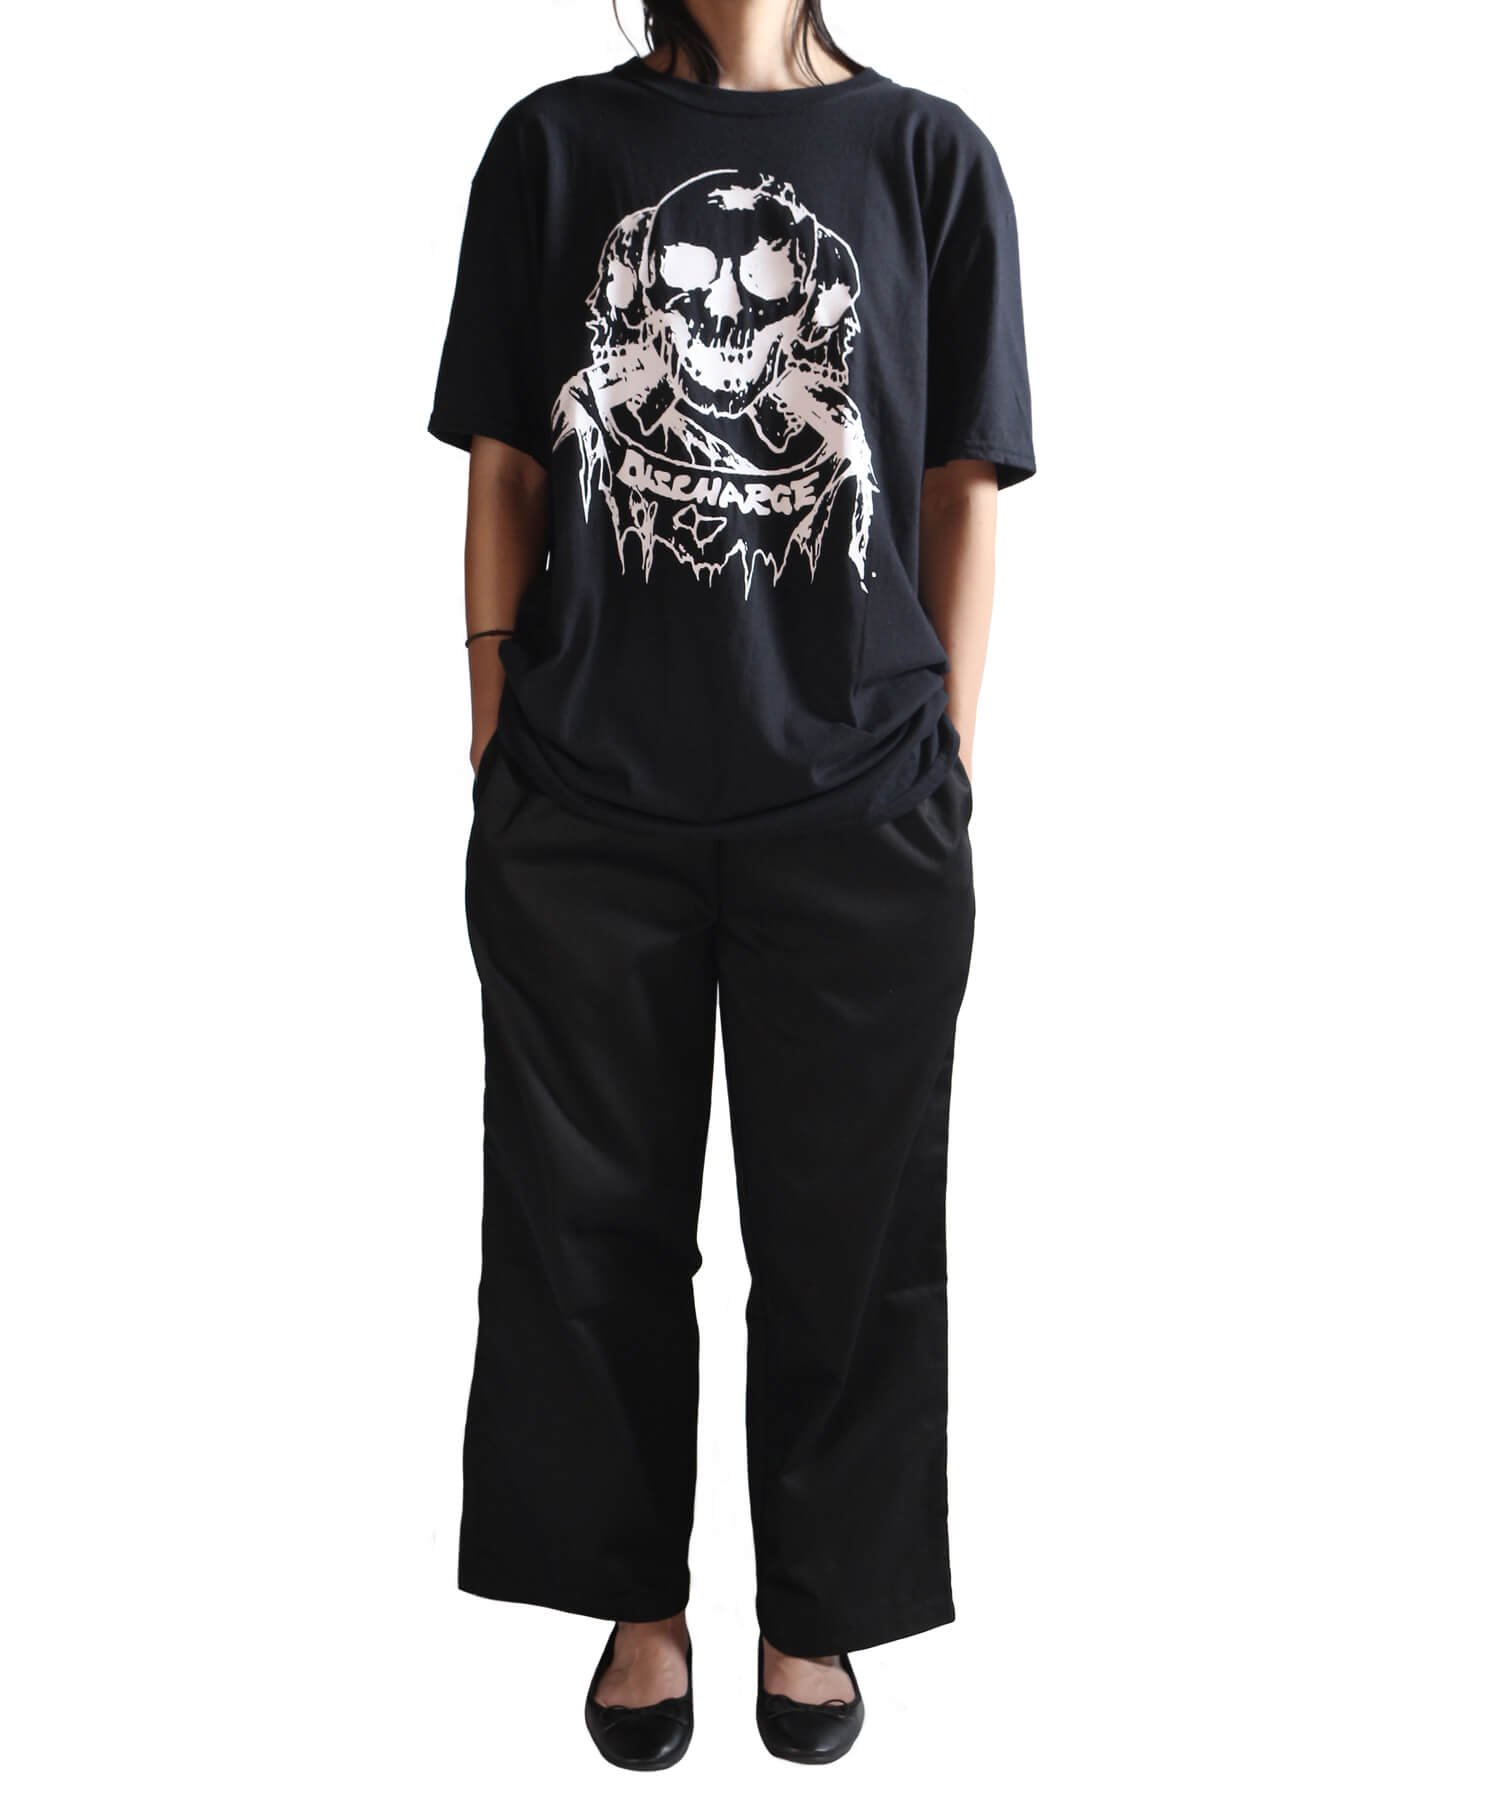 Official Artist Goods / バンドTなど |DISCHARGE / ディスチャージ:BORN TO DIE T-SHIRT (BLACK/RED) 商品画像14